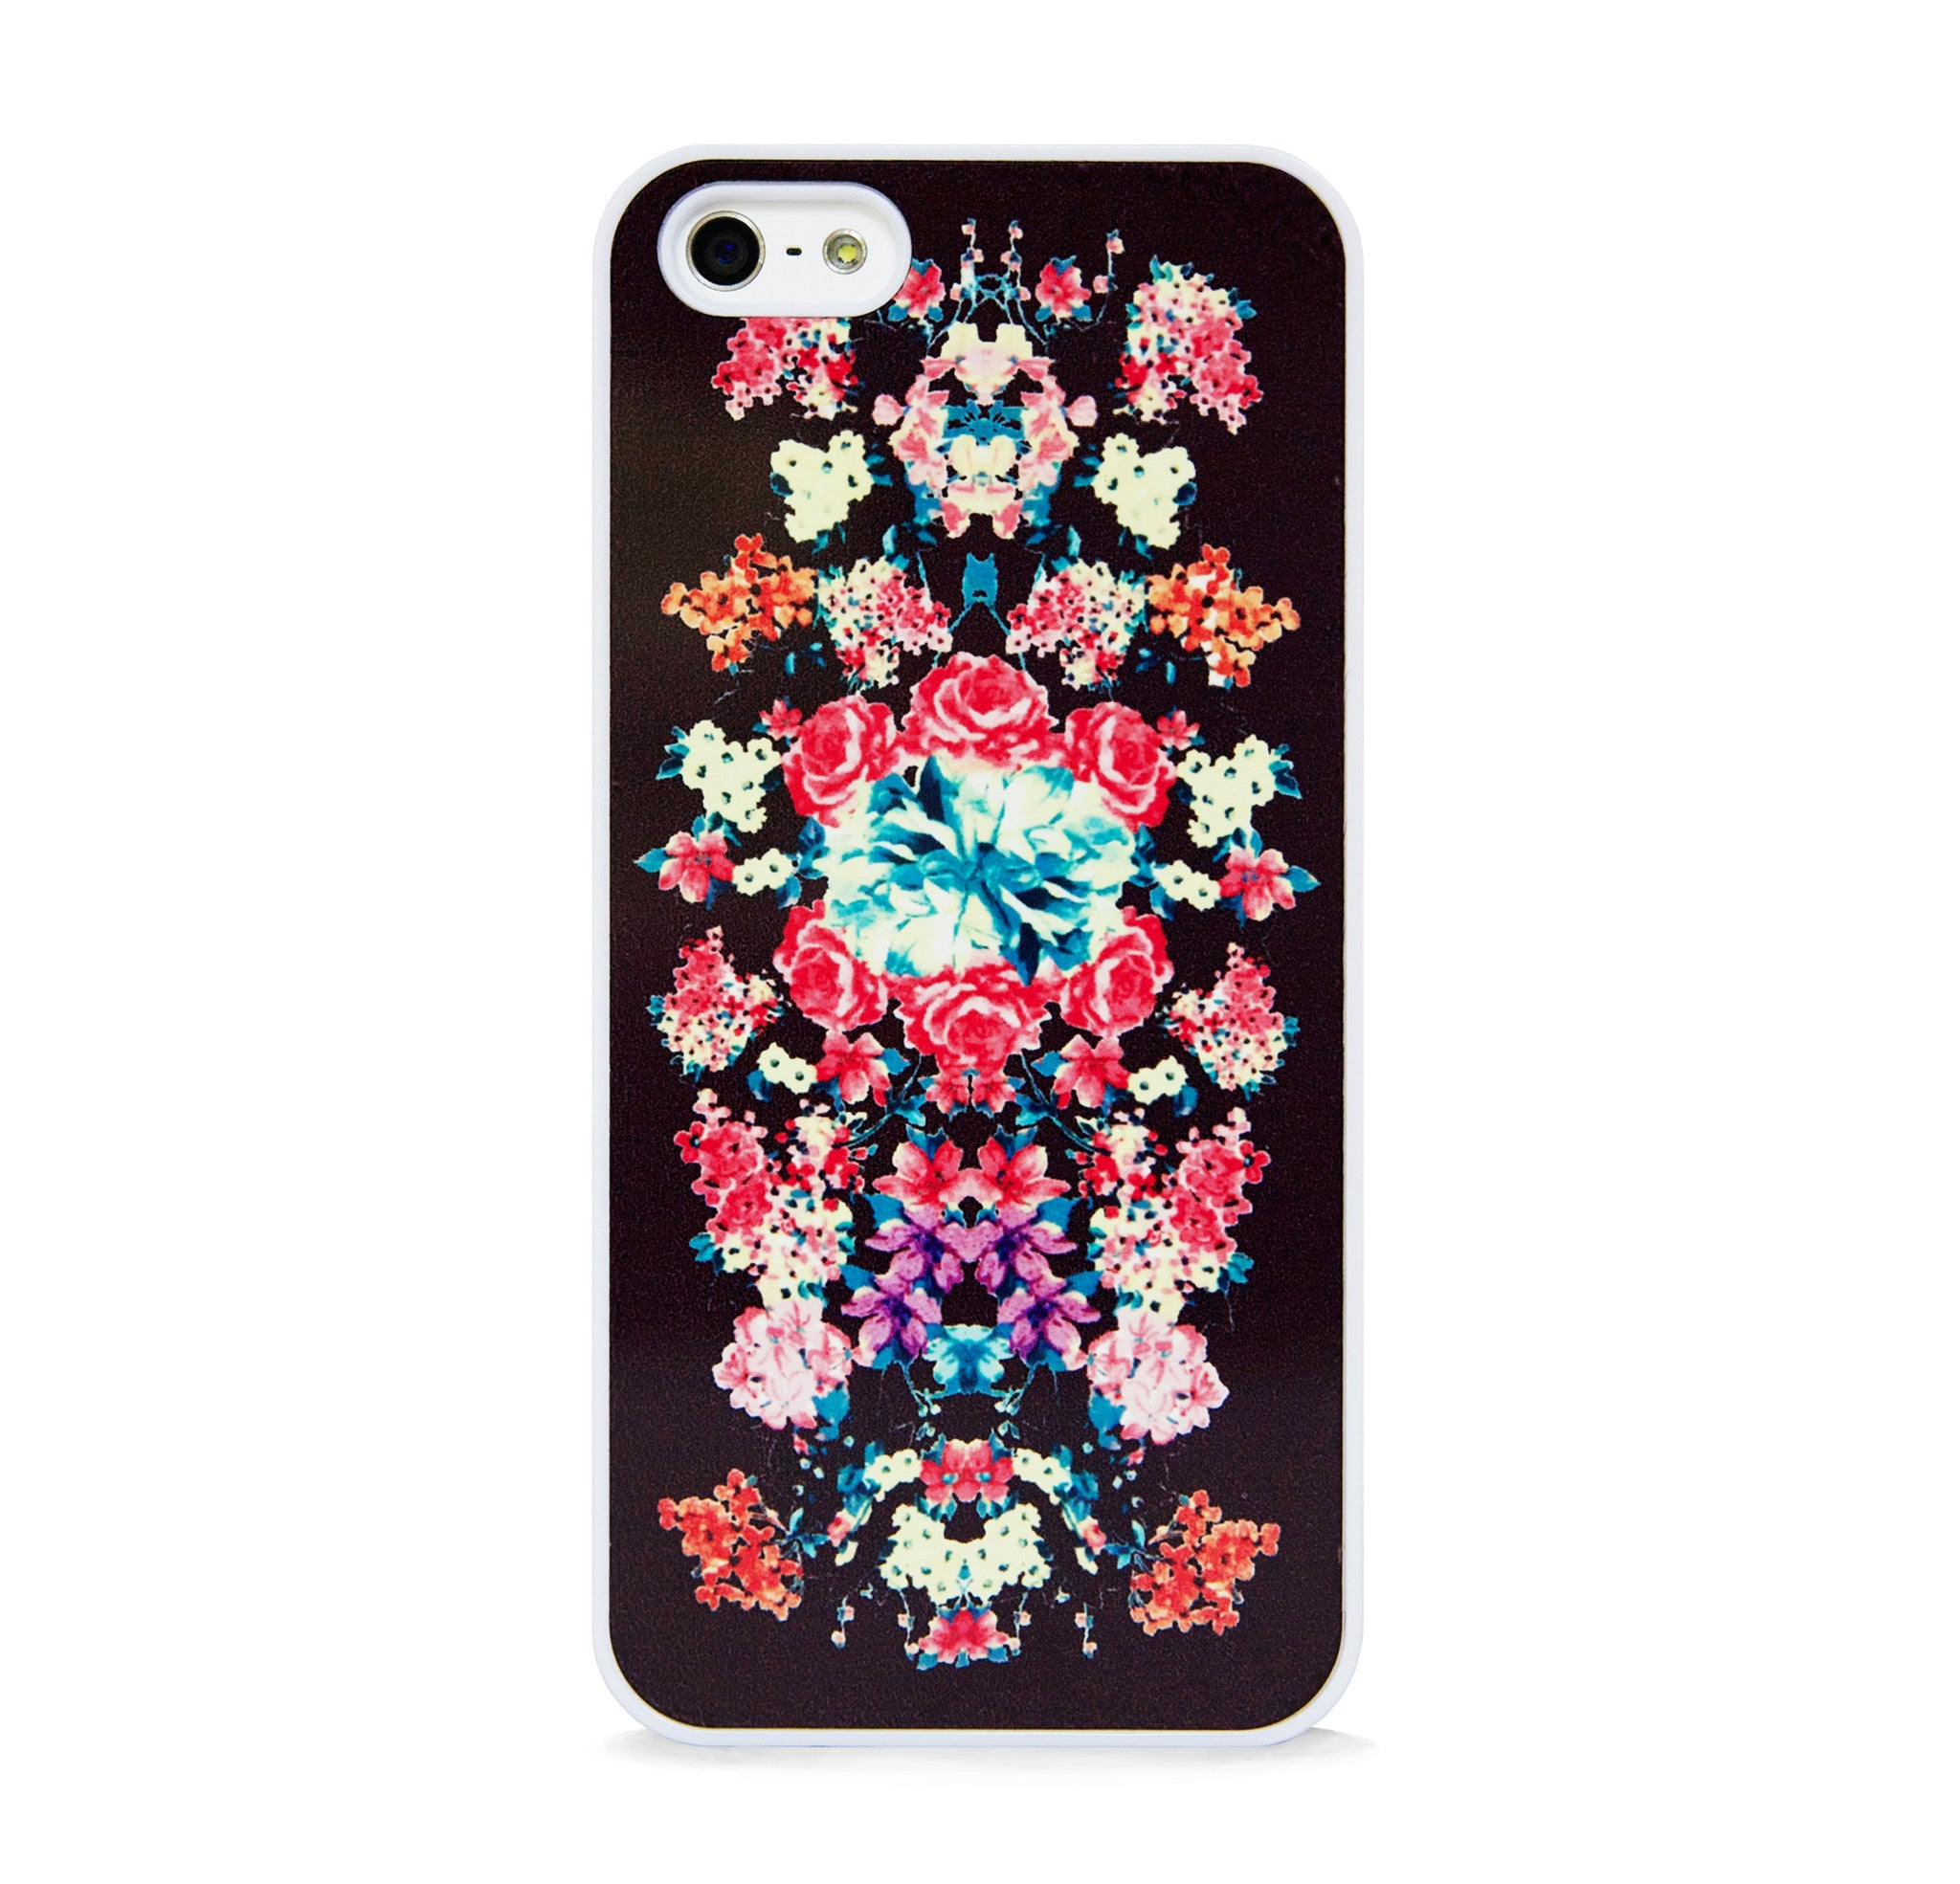 FLORAL PRINT BLACK FOR IPHONE 5/5S